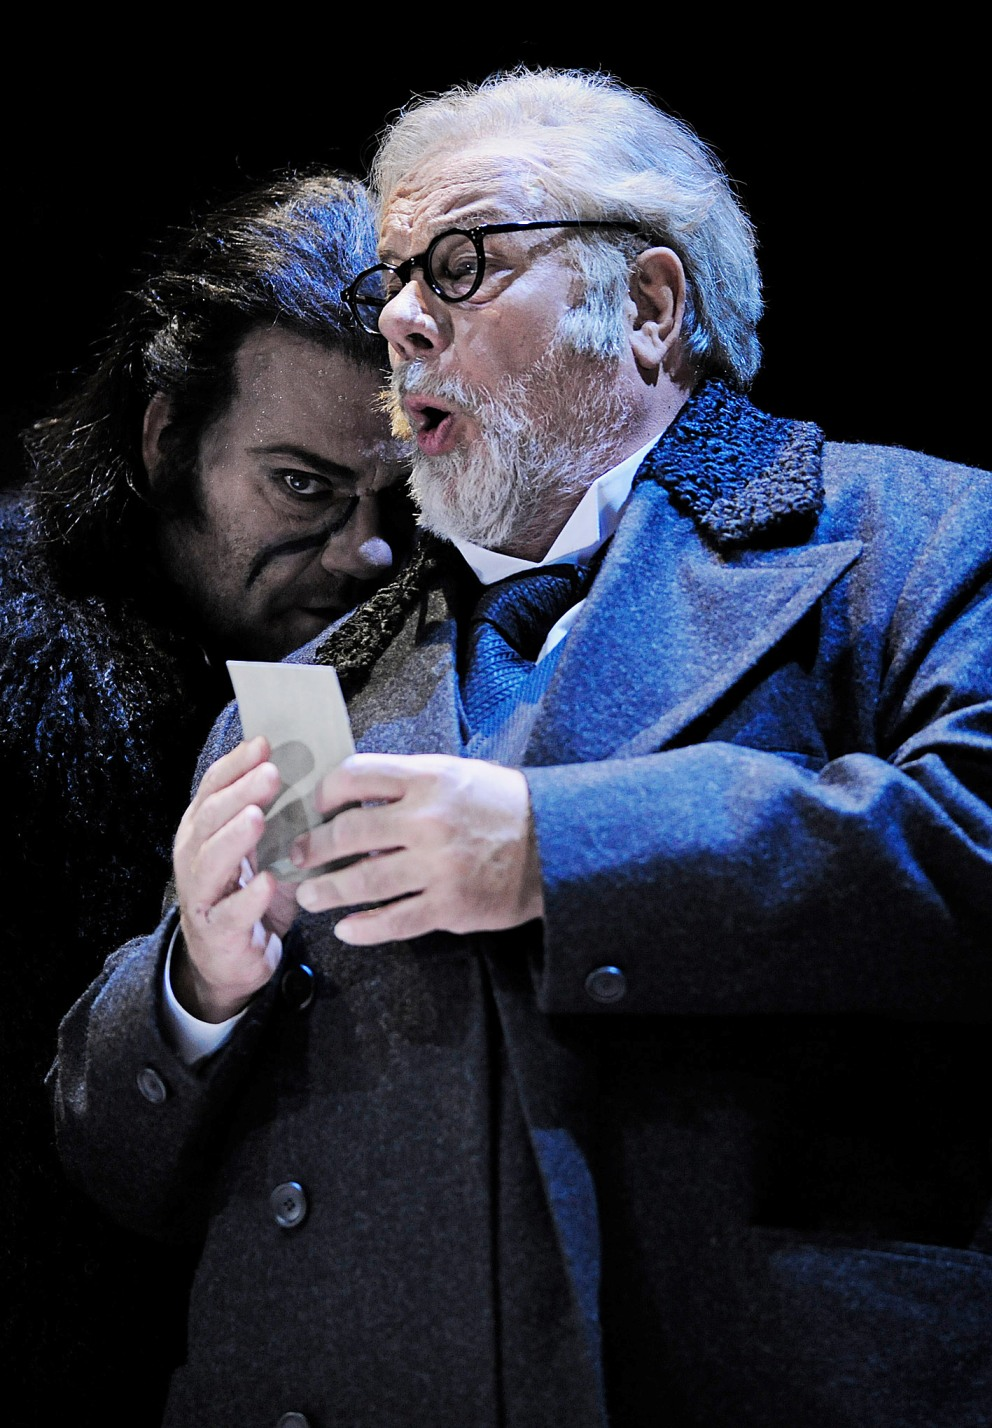 Matti Salminen and Bryn Terfel in the Zurich production of The Flying Dutchman